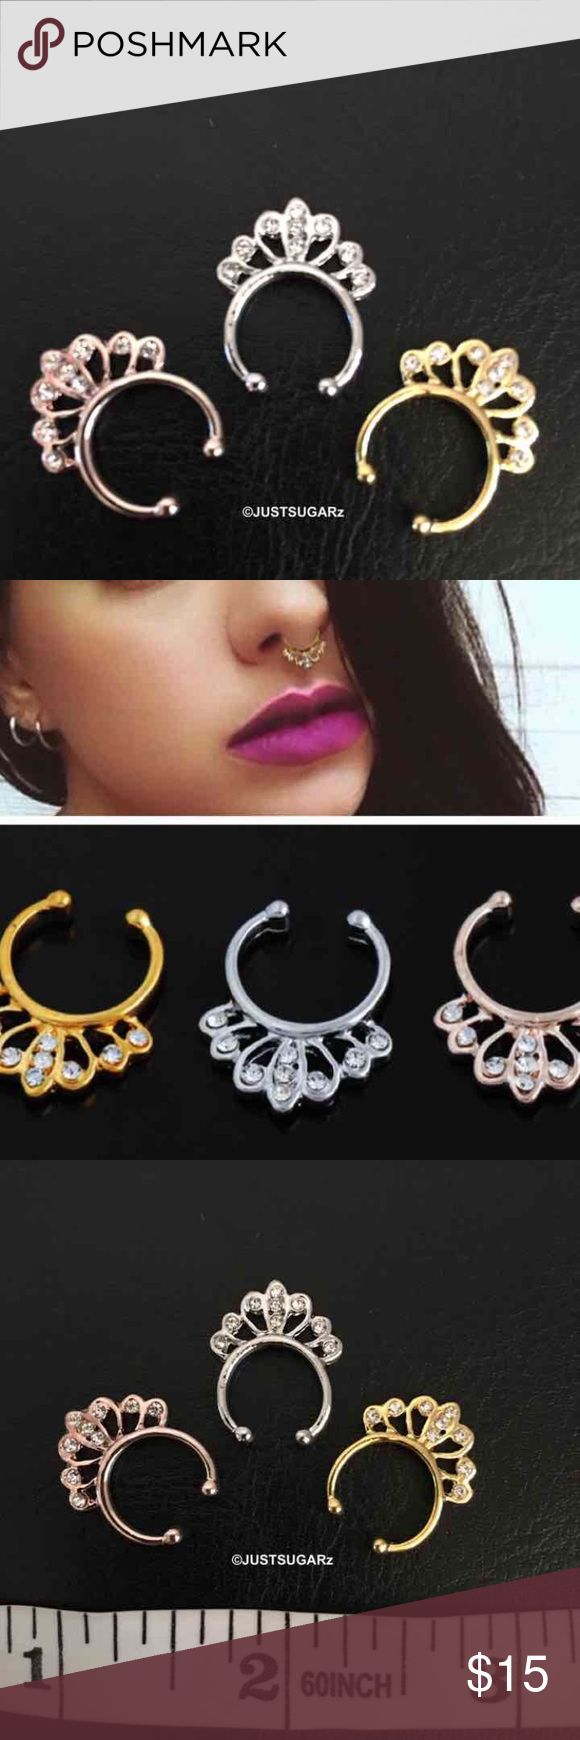 """3/$15 bull nose ring hoop non piercing 3/$15 bull nose ring hoop septum non piercing   Original price: 1/$8   Material: alloy/crystal ---no piercing   Colors available: silver, gold and rose gold   Look fabulous every day of the year. Wear them with a fancy outfit on a special night or casually ...Septum nose rings without having to actually pierce your nose!!!   Item does not have """"tags"""" but it sealed in plastic and bubble wrap for secure shipping... Never used...brand new.  PRICE IS FIRM…"""